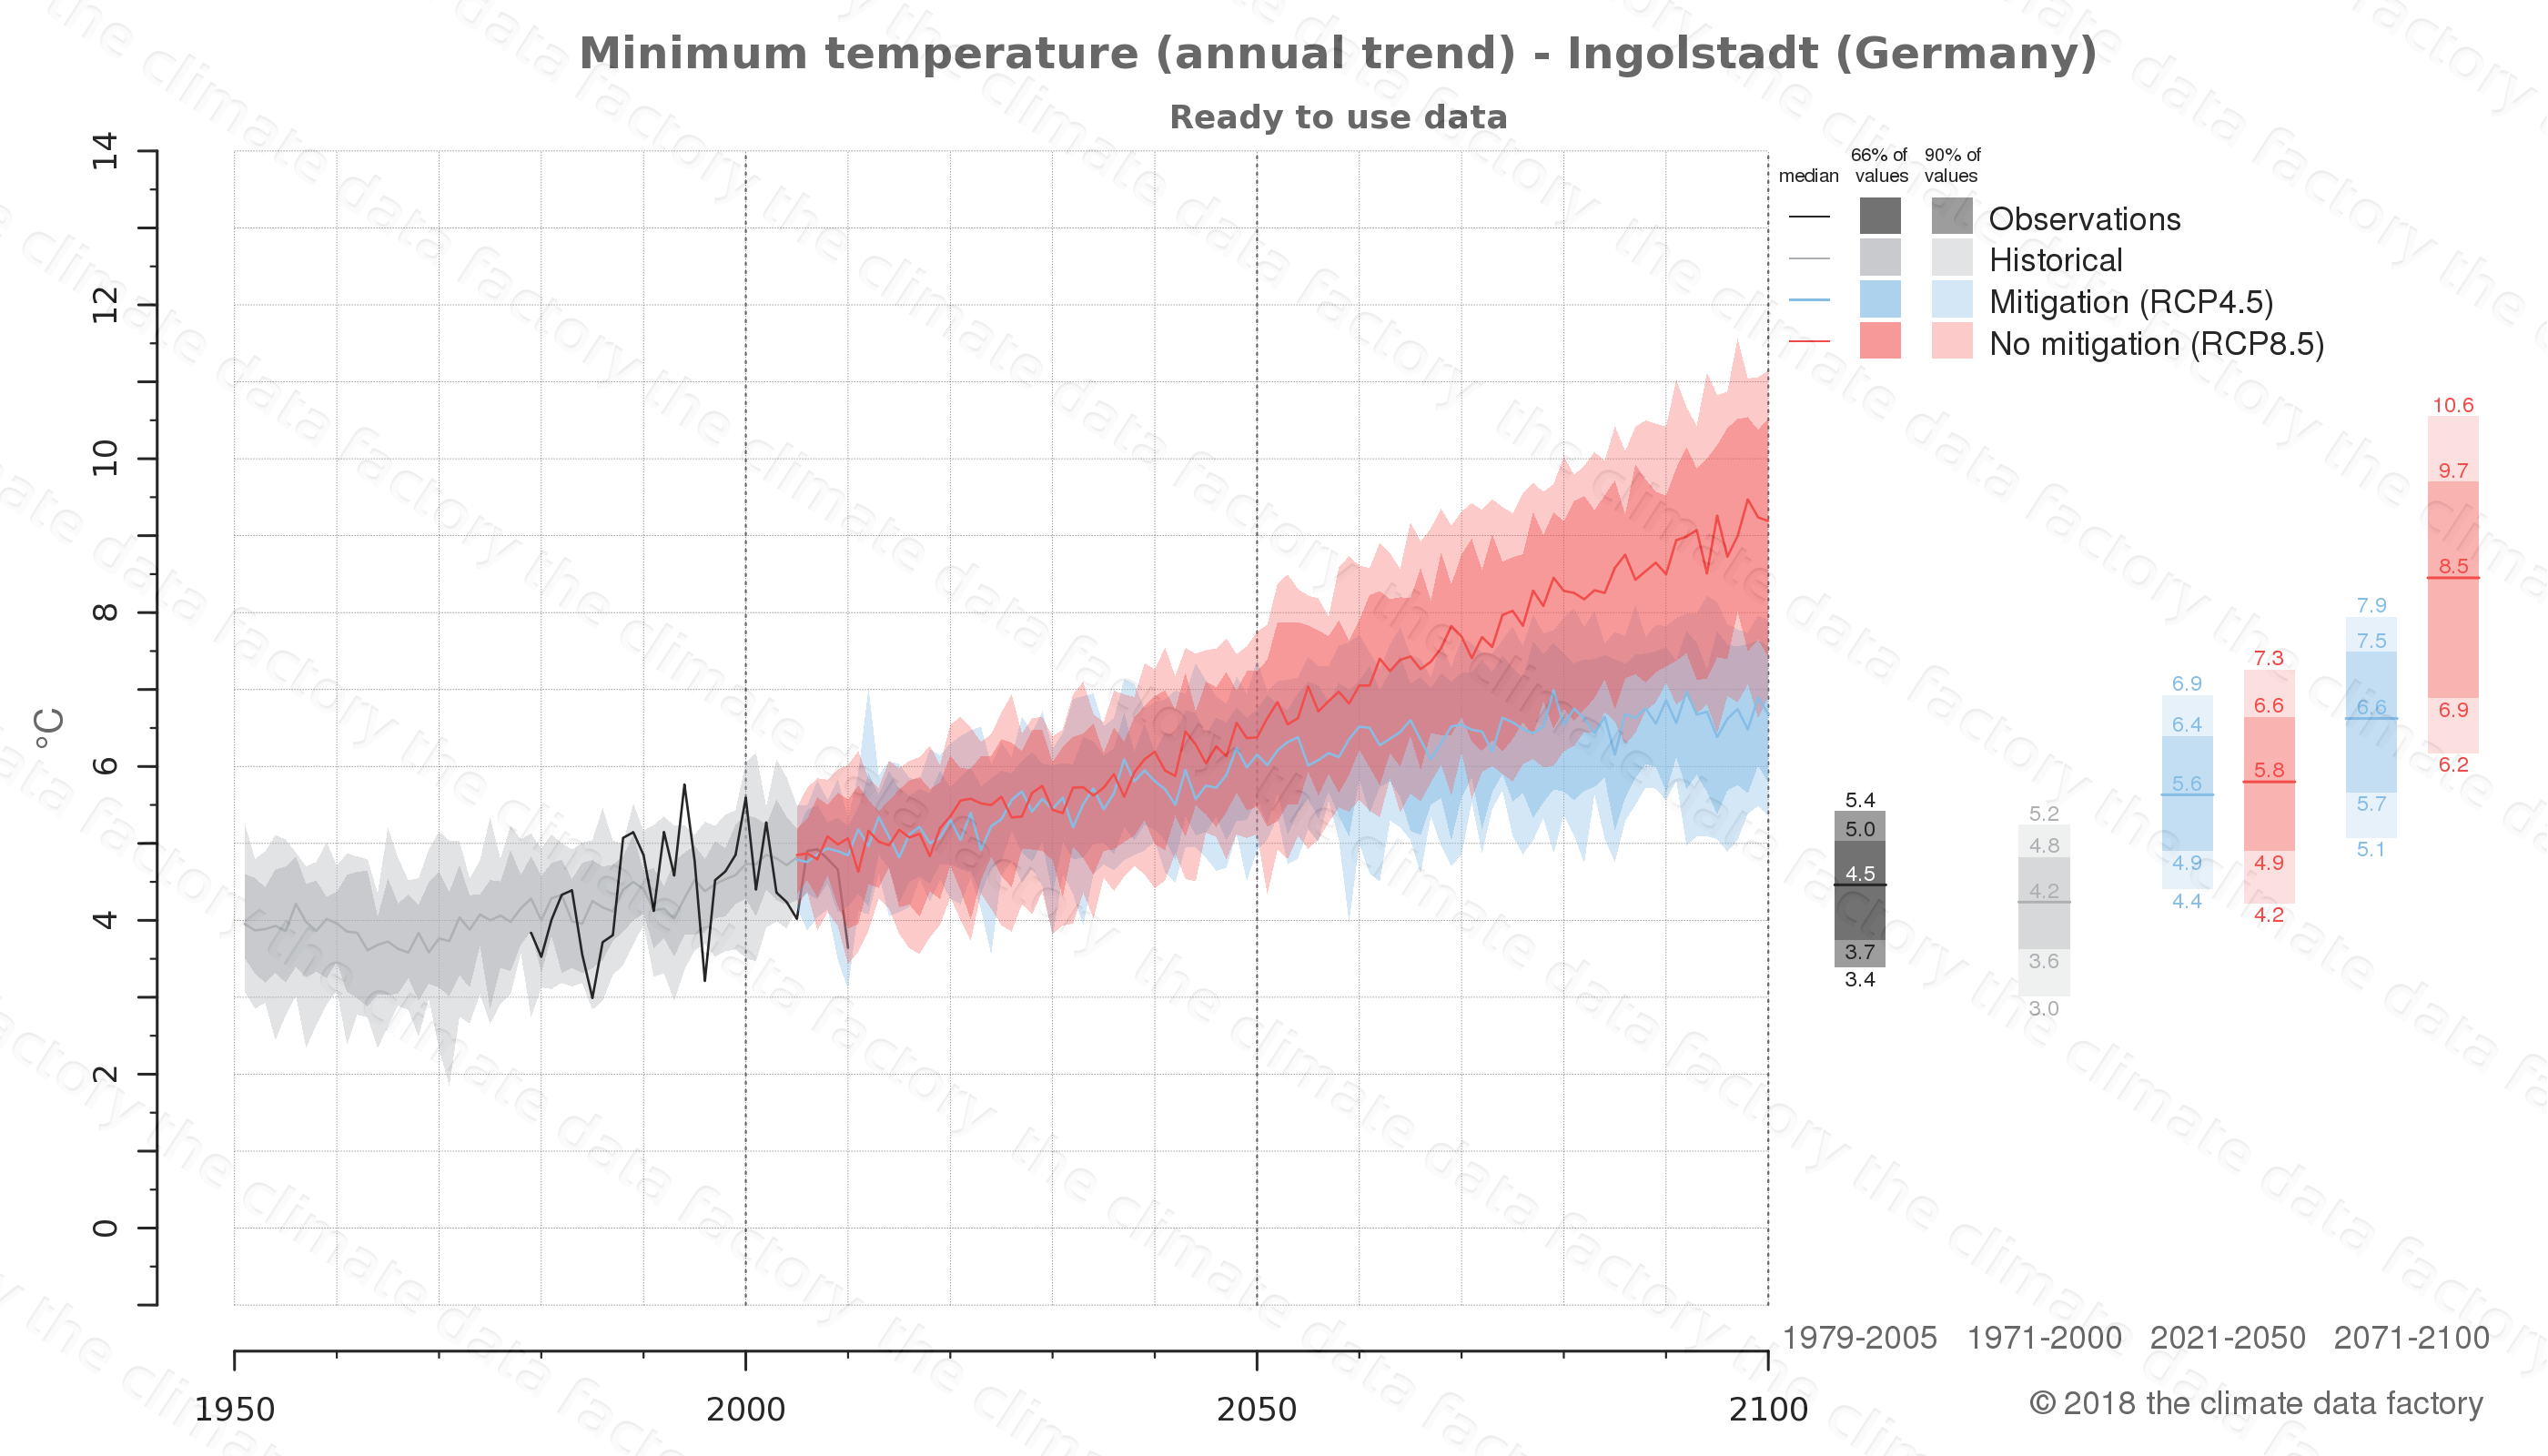 climate change data policy adaptation climate graph city data minimum-temperature ingolstadt germany